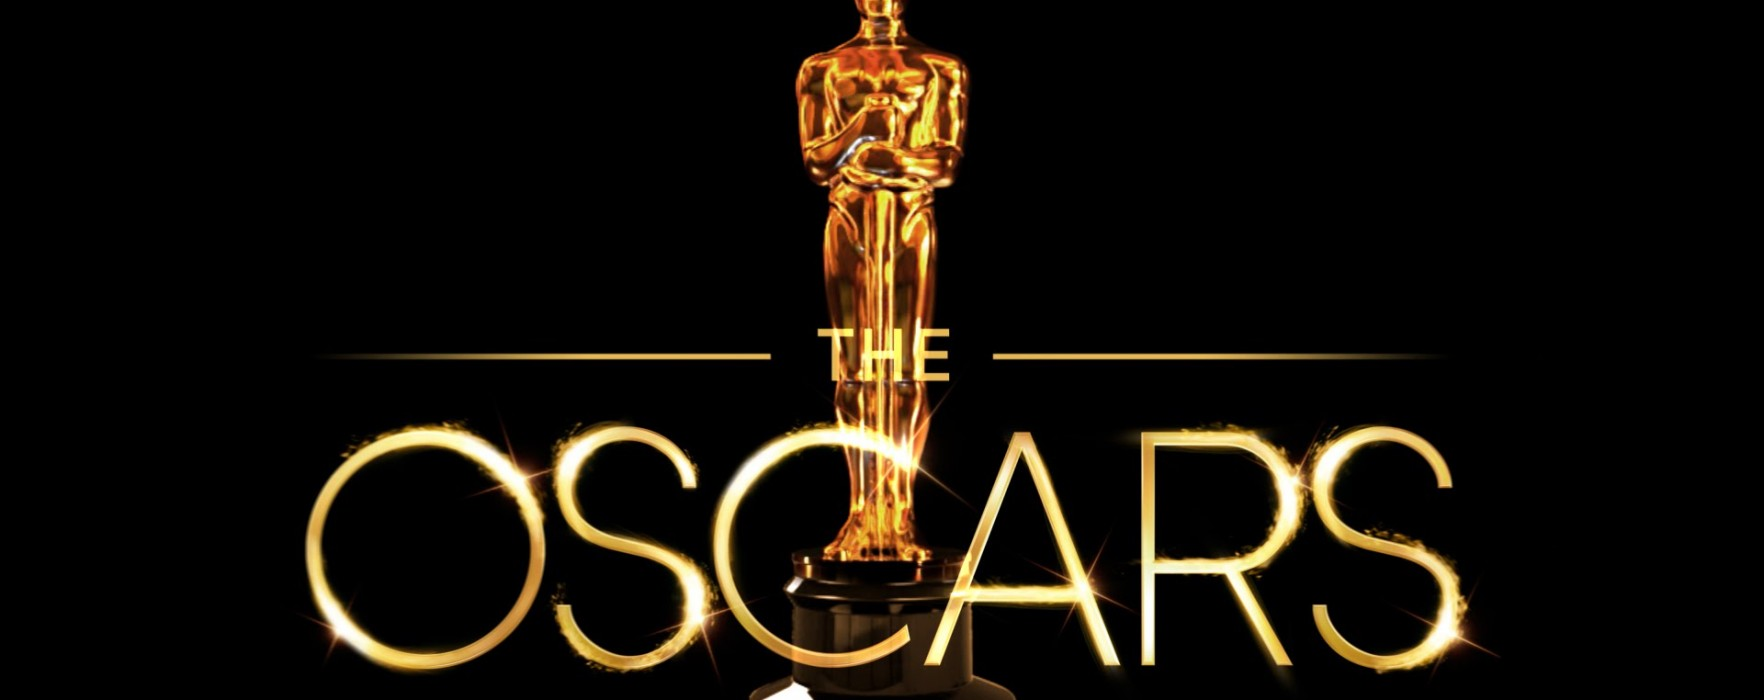 Everything we know about the Oscars 2019